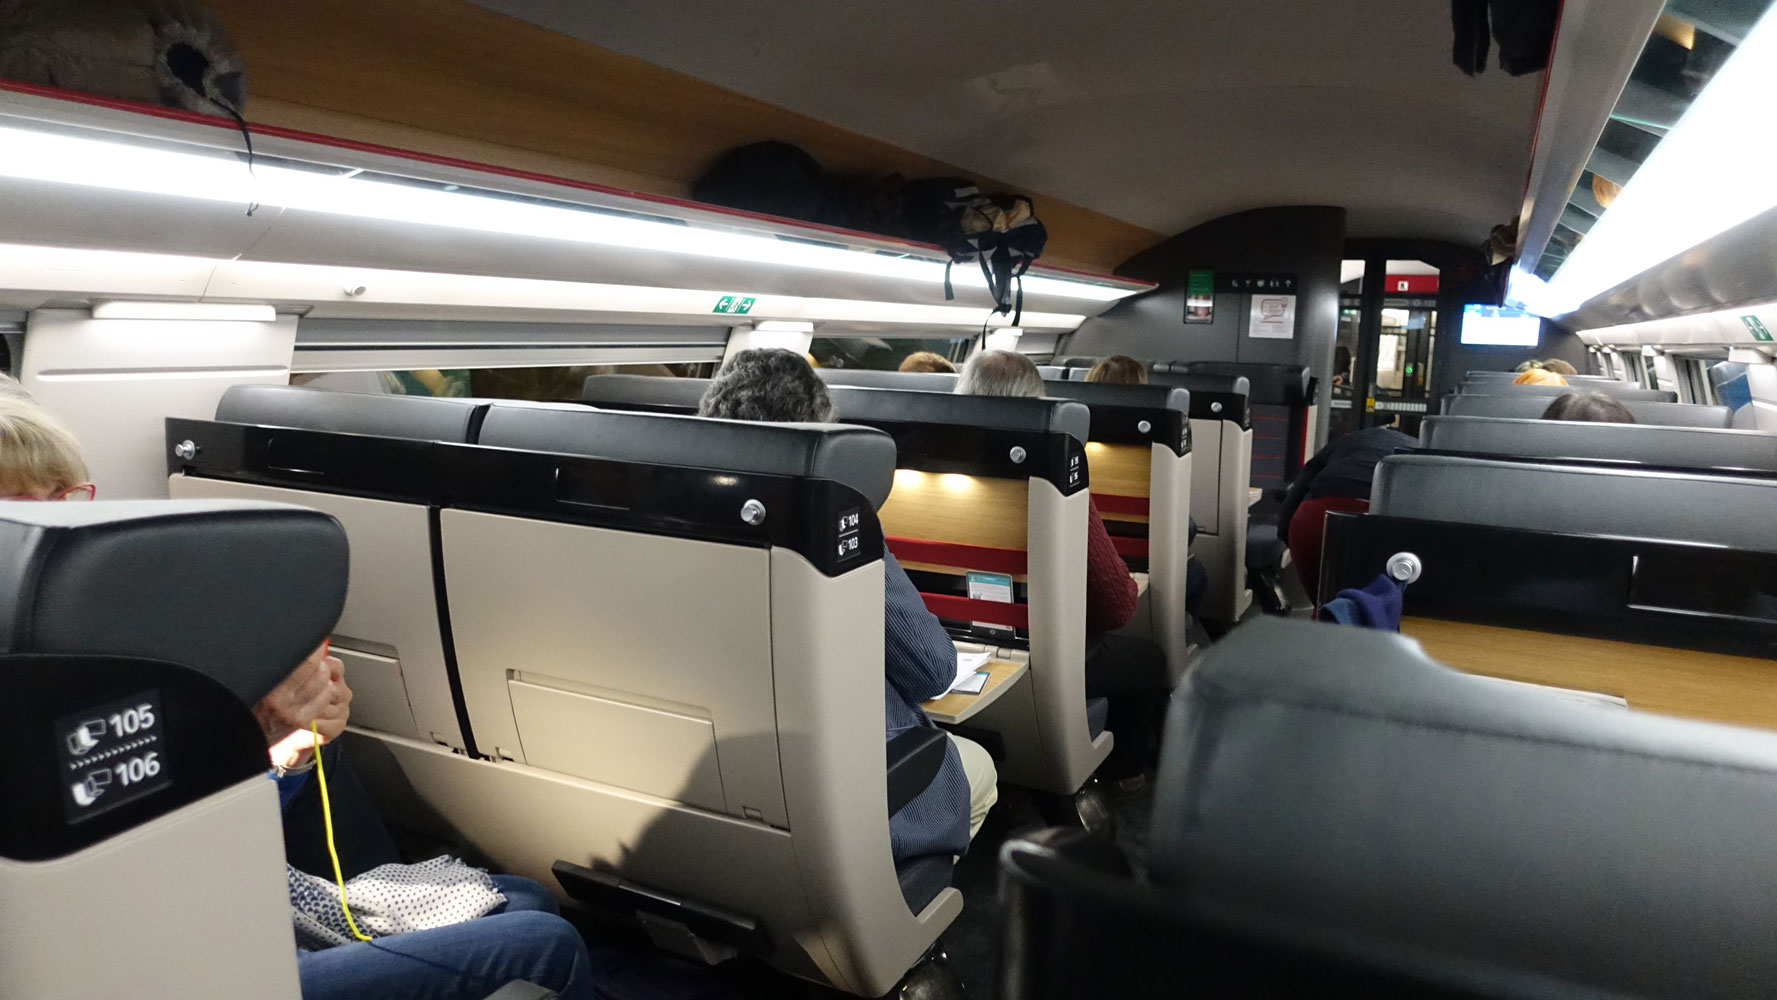 Superb Tgv From 20 Frances Tgv High Speed Train Including Machost Co Dining Chair Design Ideas Machostcouk